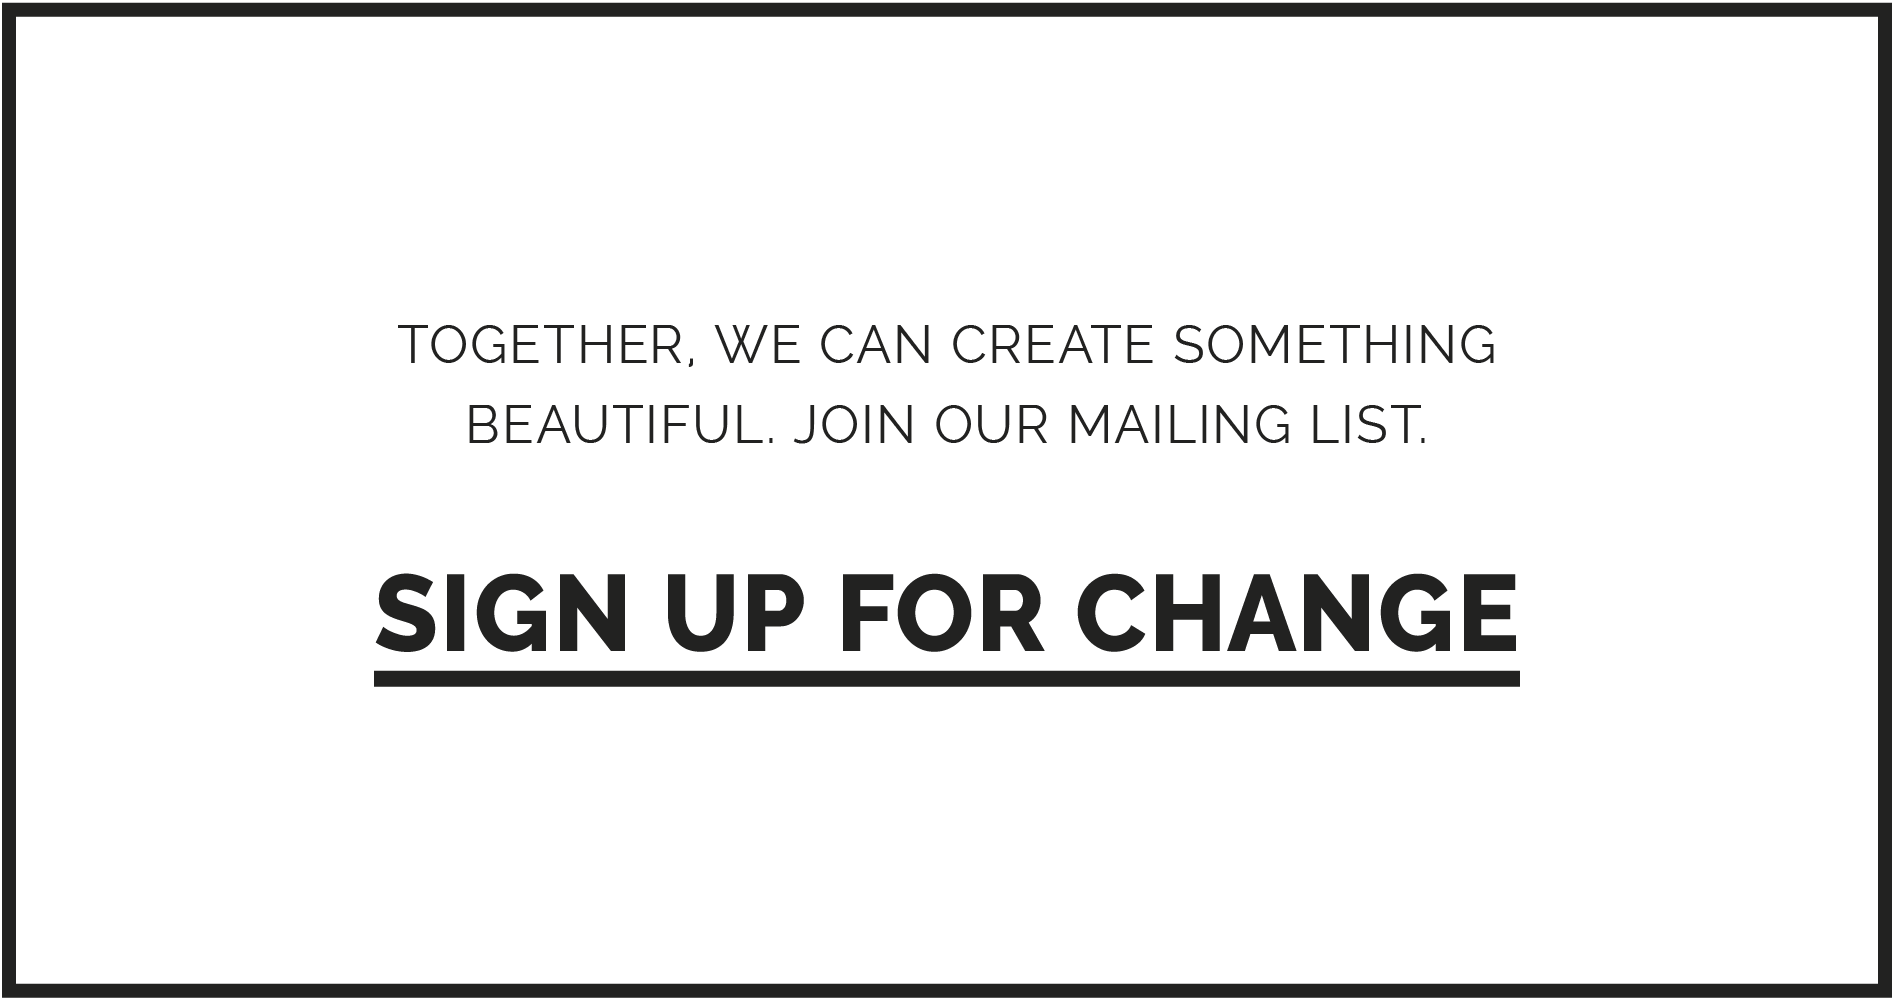 TOGETHER, WE CAN CREATE SOMETHING BEAUTIFUL. JOIN OUR MAILING LIST. SIGN UP FOR CHANGE